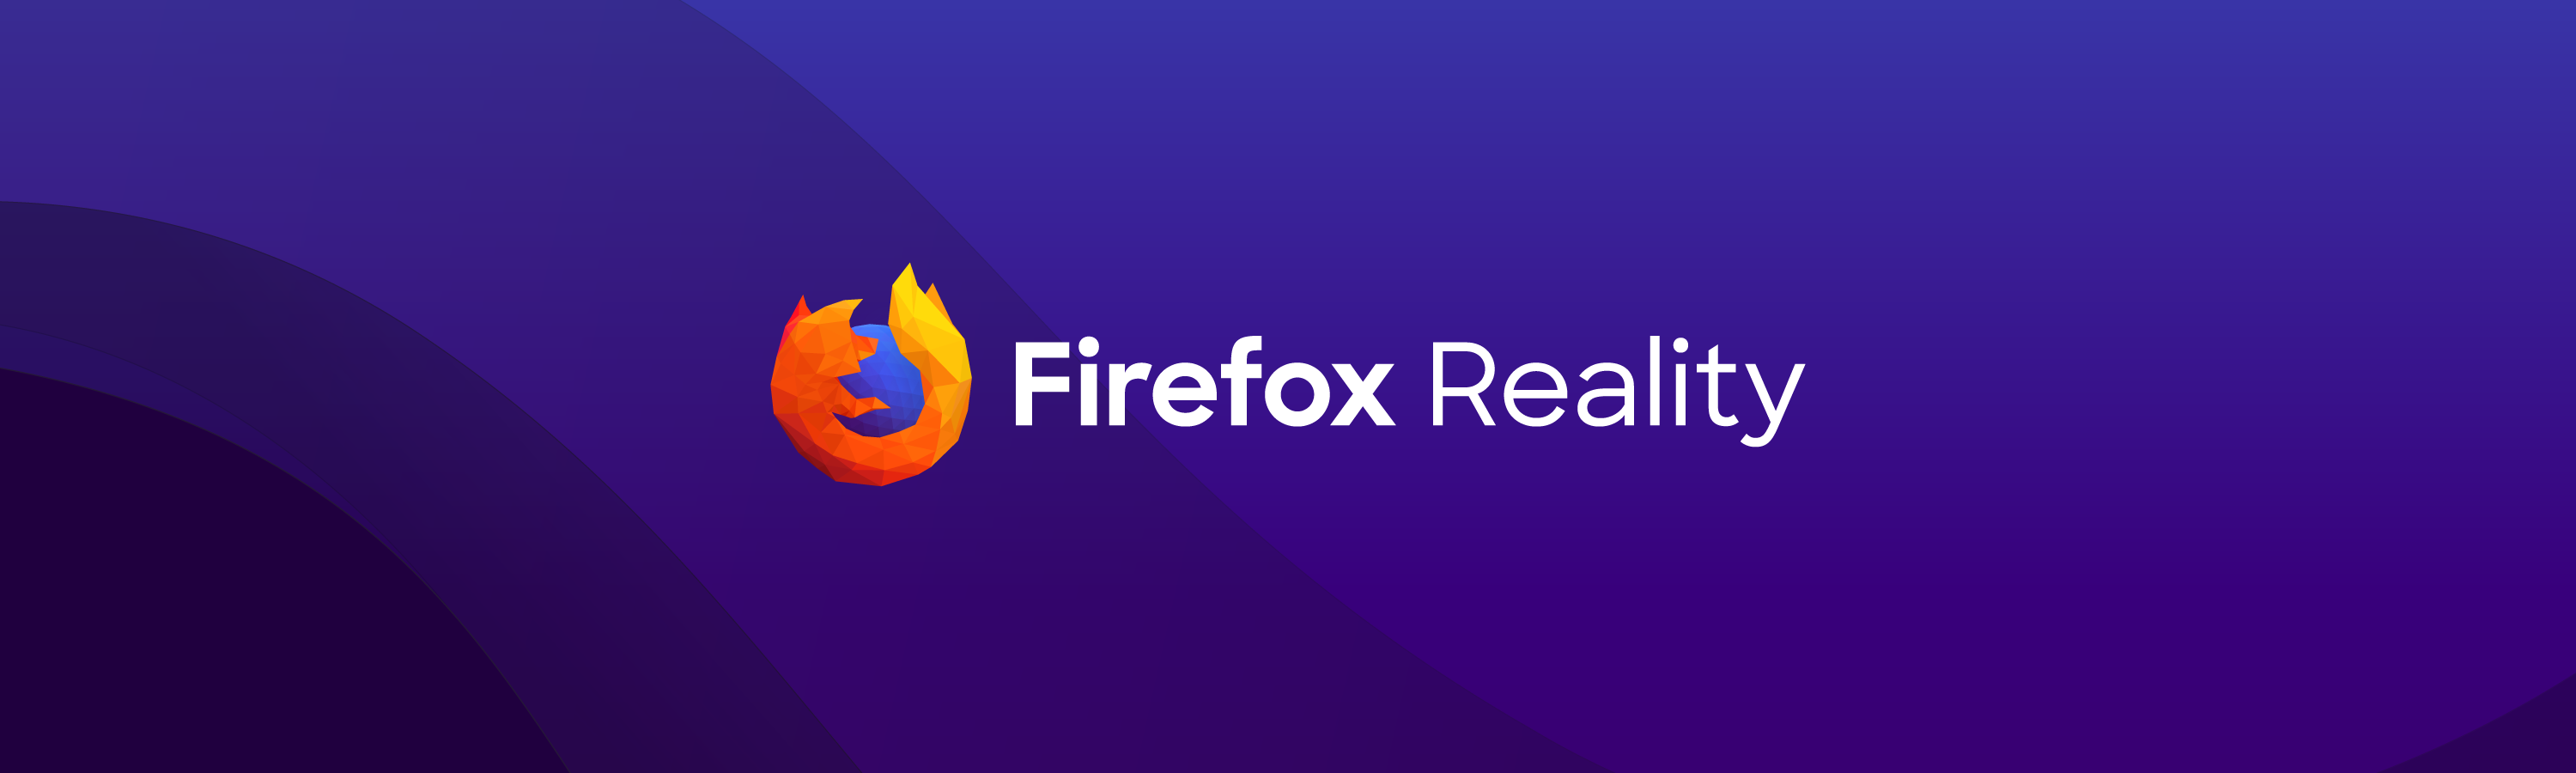 GitHub - MozillaReality/FirefoxReality: A fast and secure